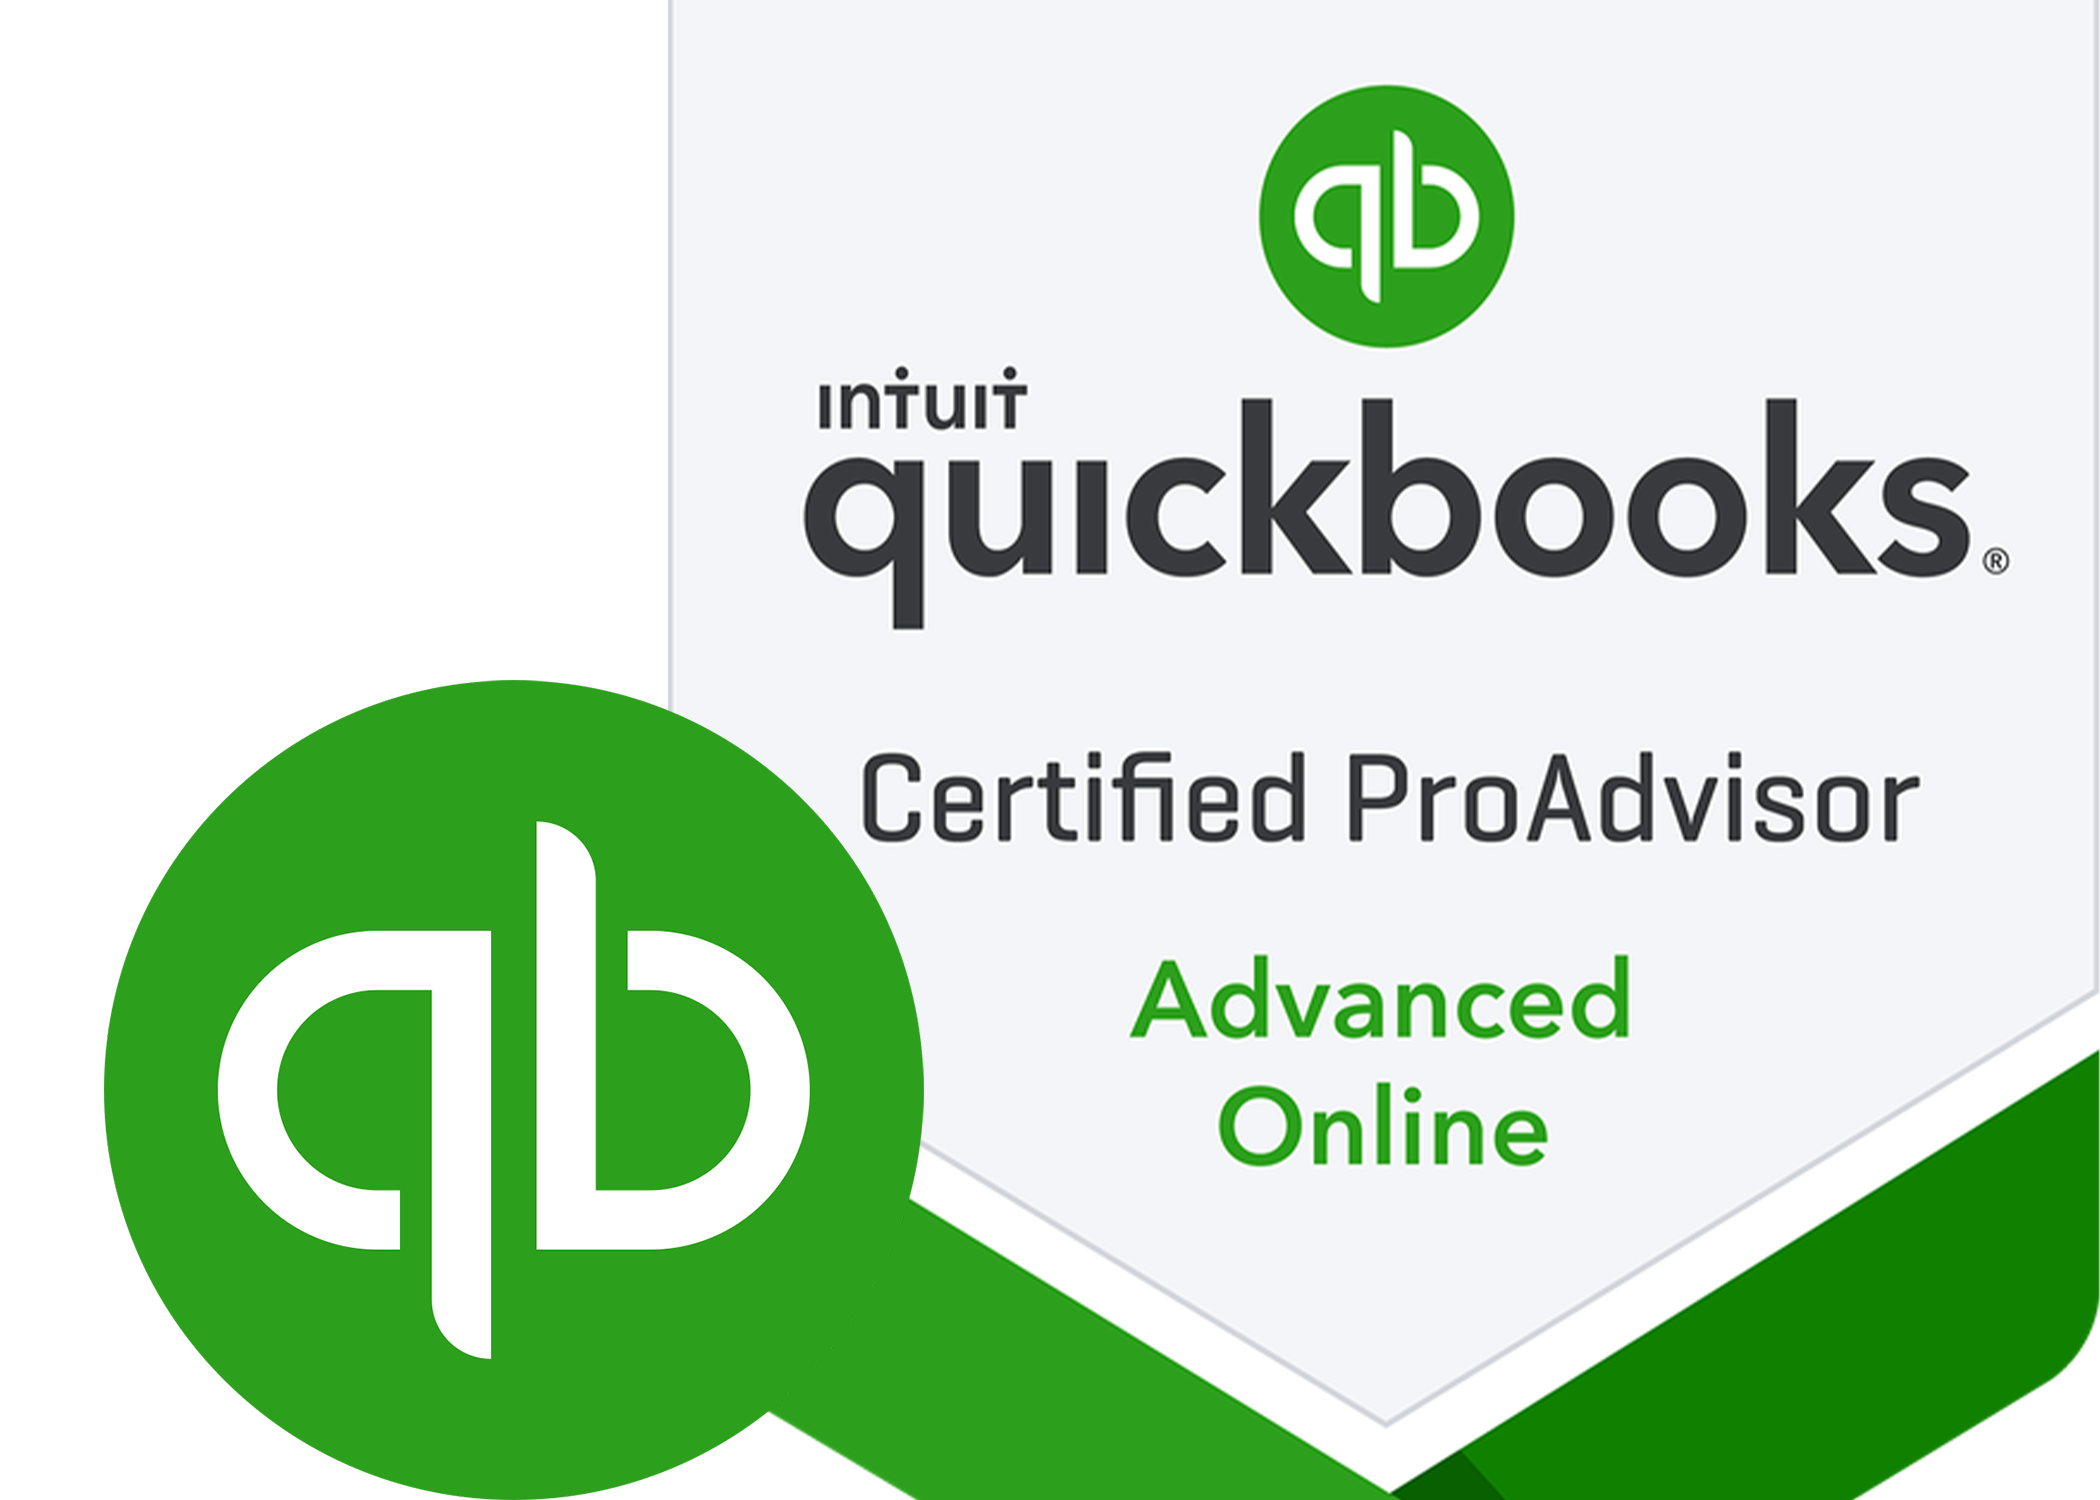 Waterford Business Solutions Accounting and Bookkeeping. Virtual Accounting for Intuit QuickBooks Online Accounting Software Services.